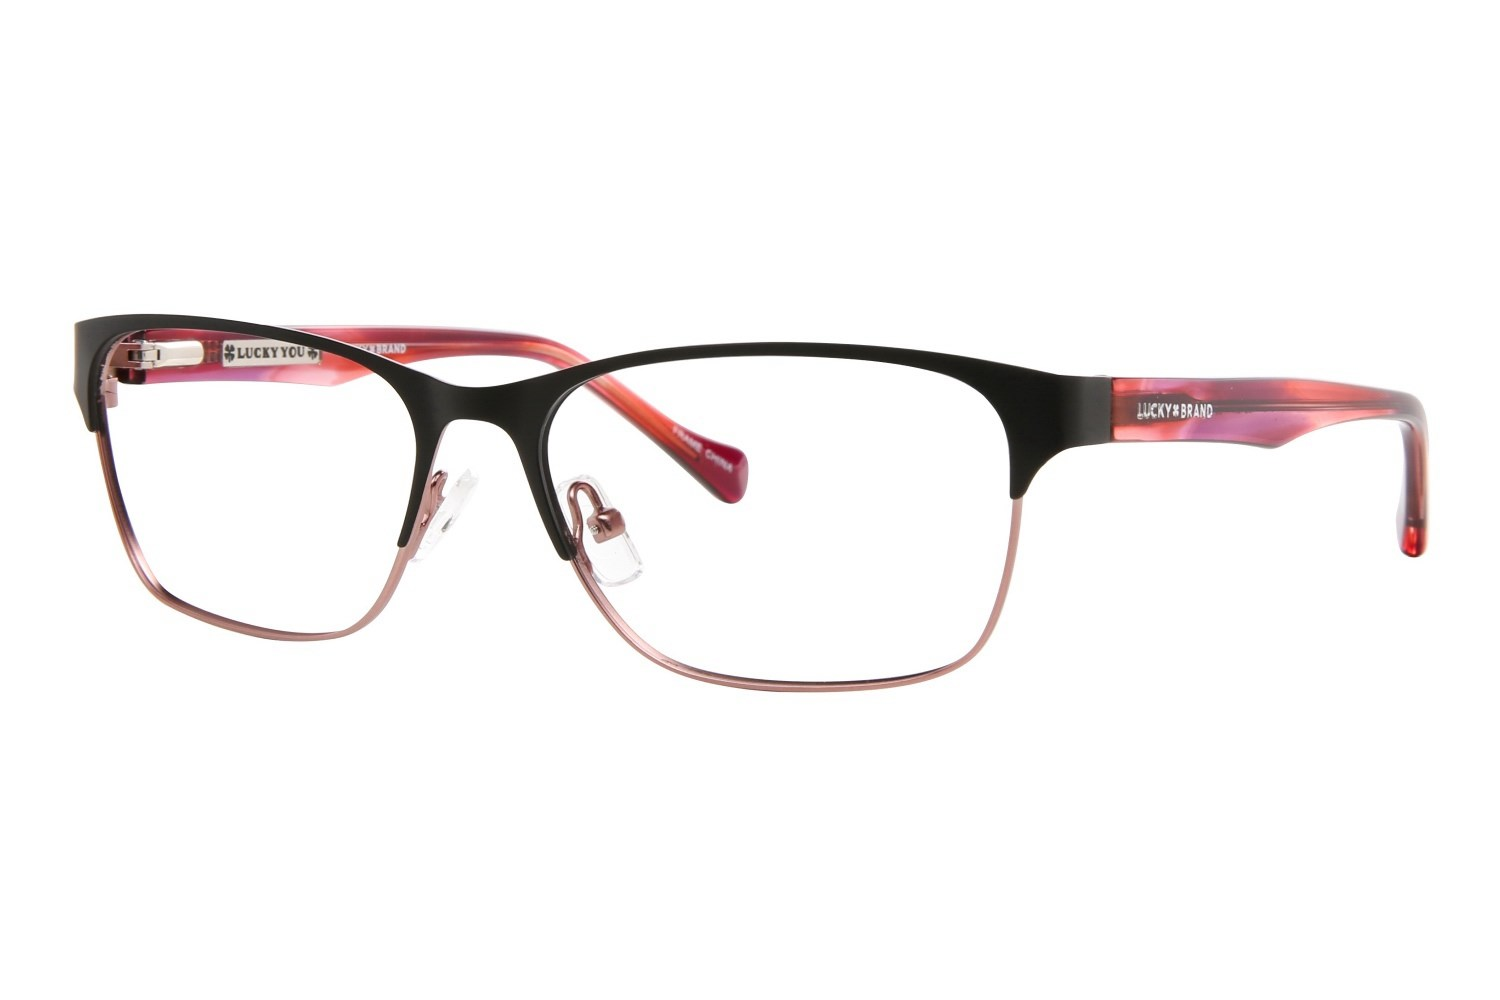 lucky-d101-prescription-eyeglasses